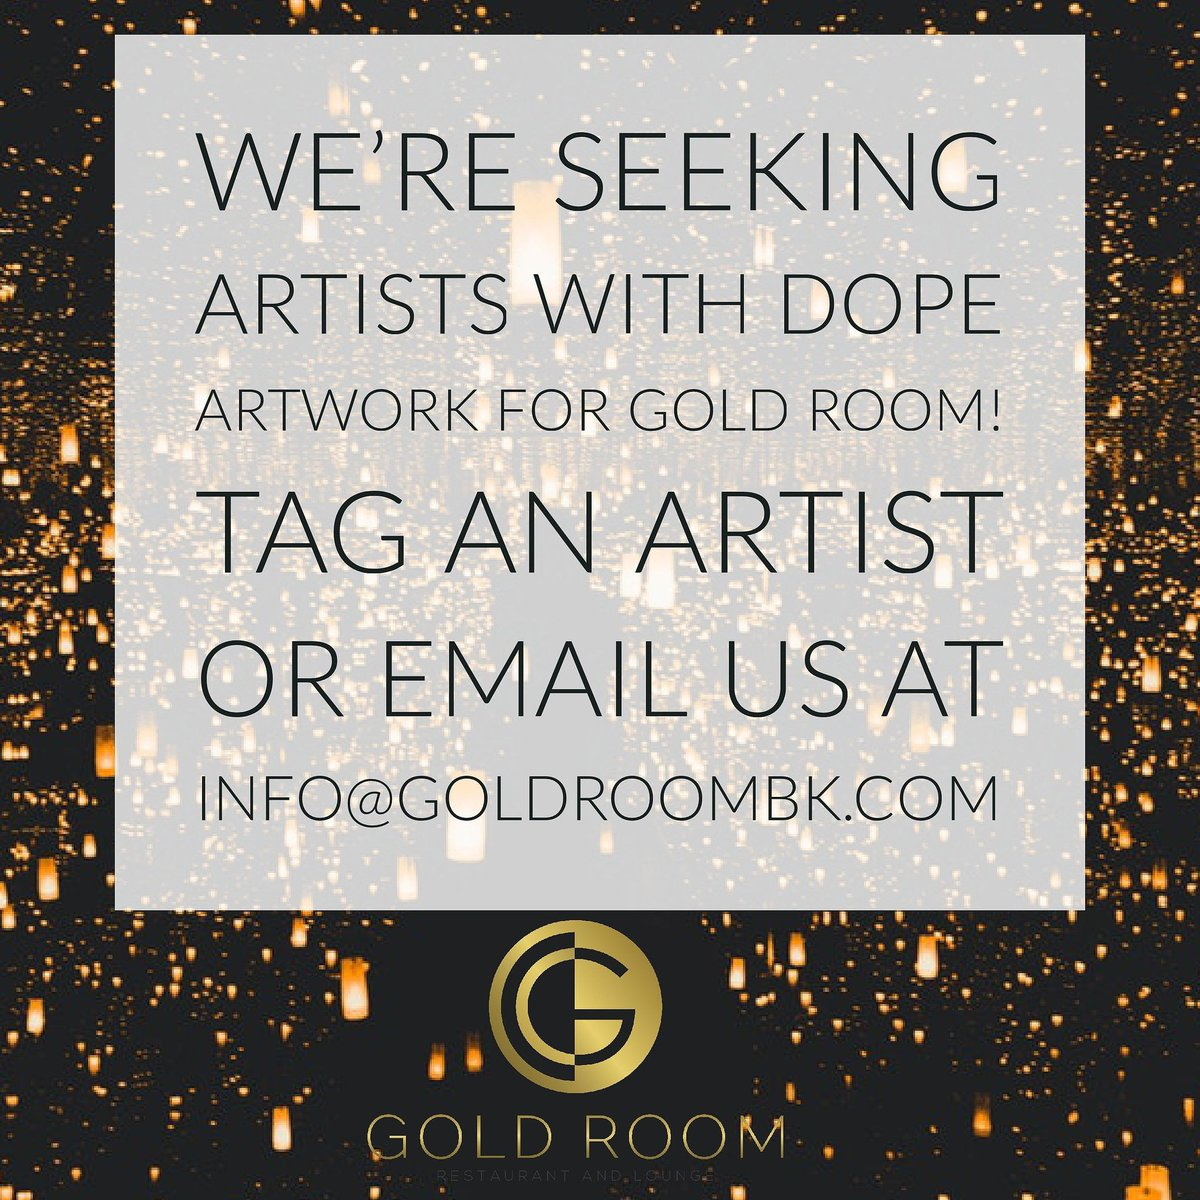 Gold Room Bk On Twitter Tag An Artist Or Email Us At Info